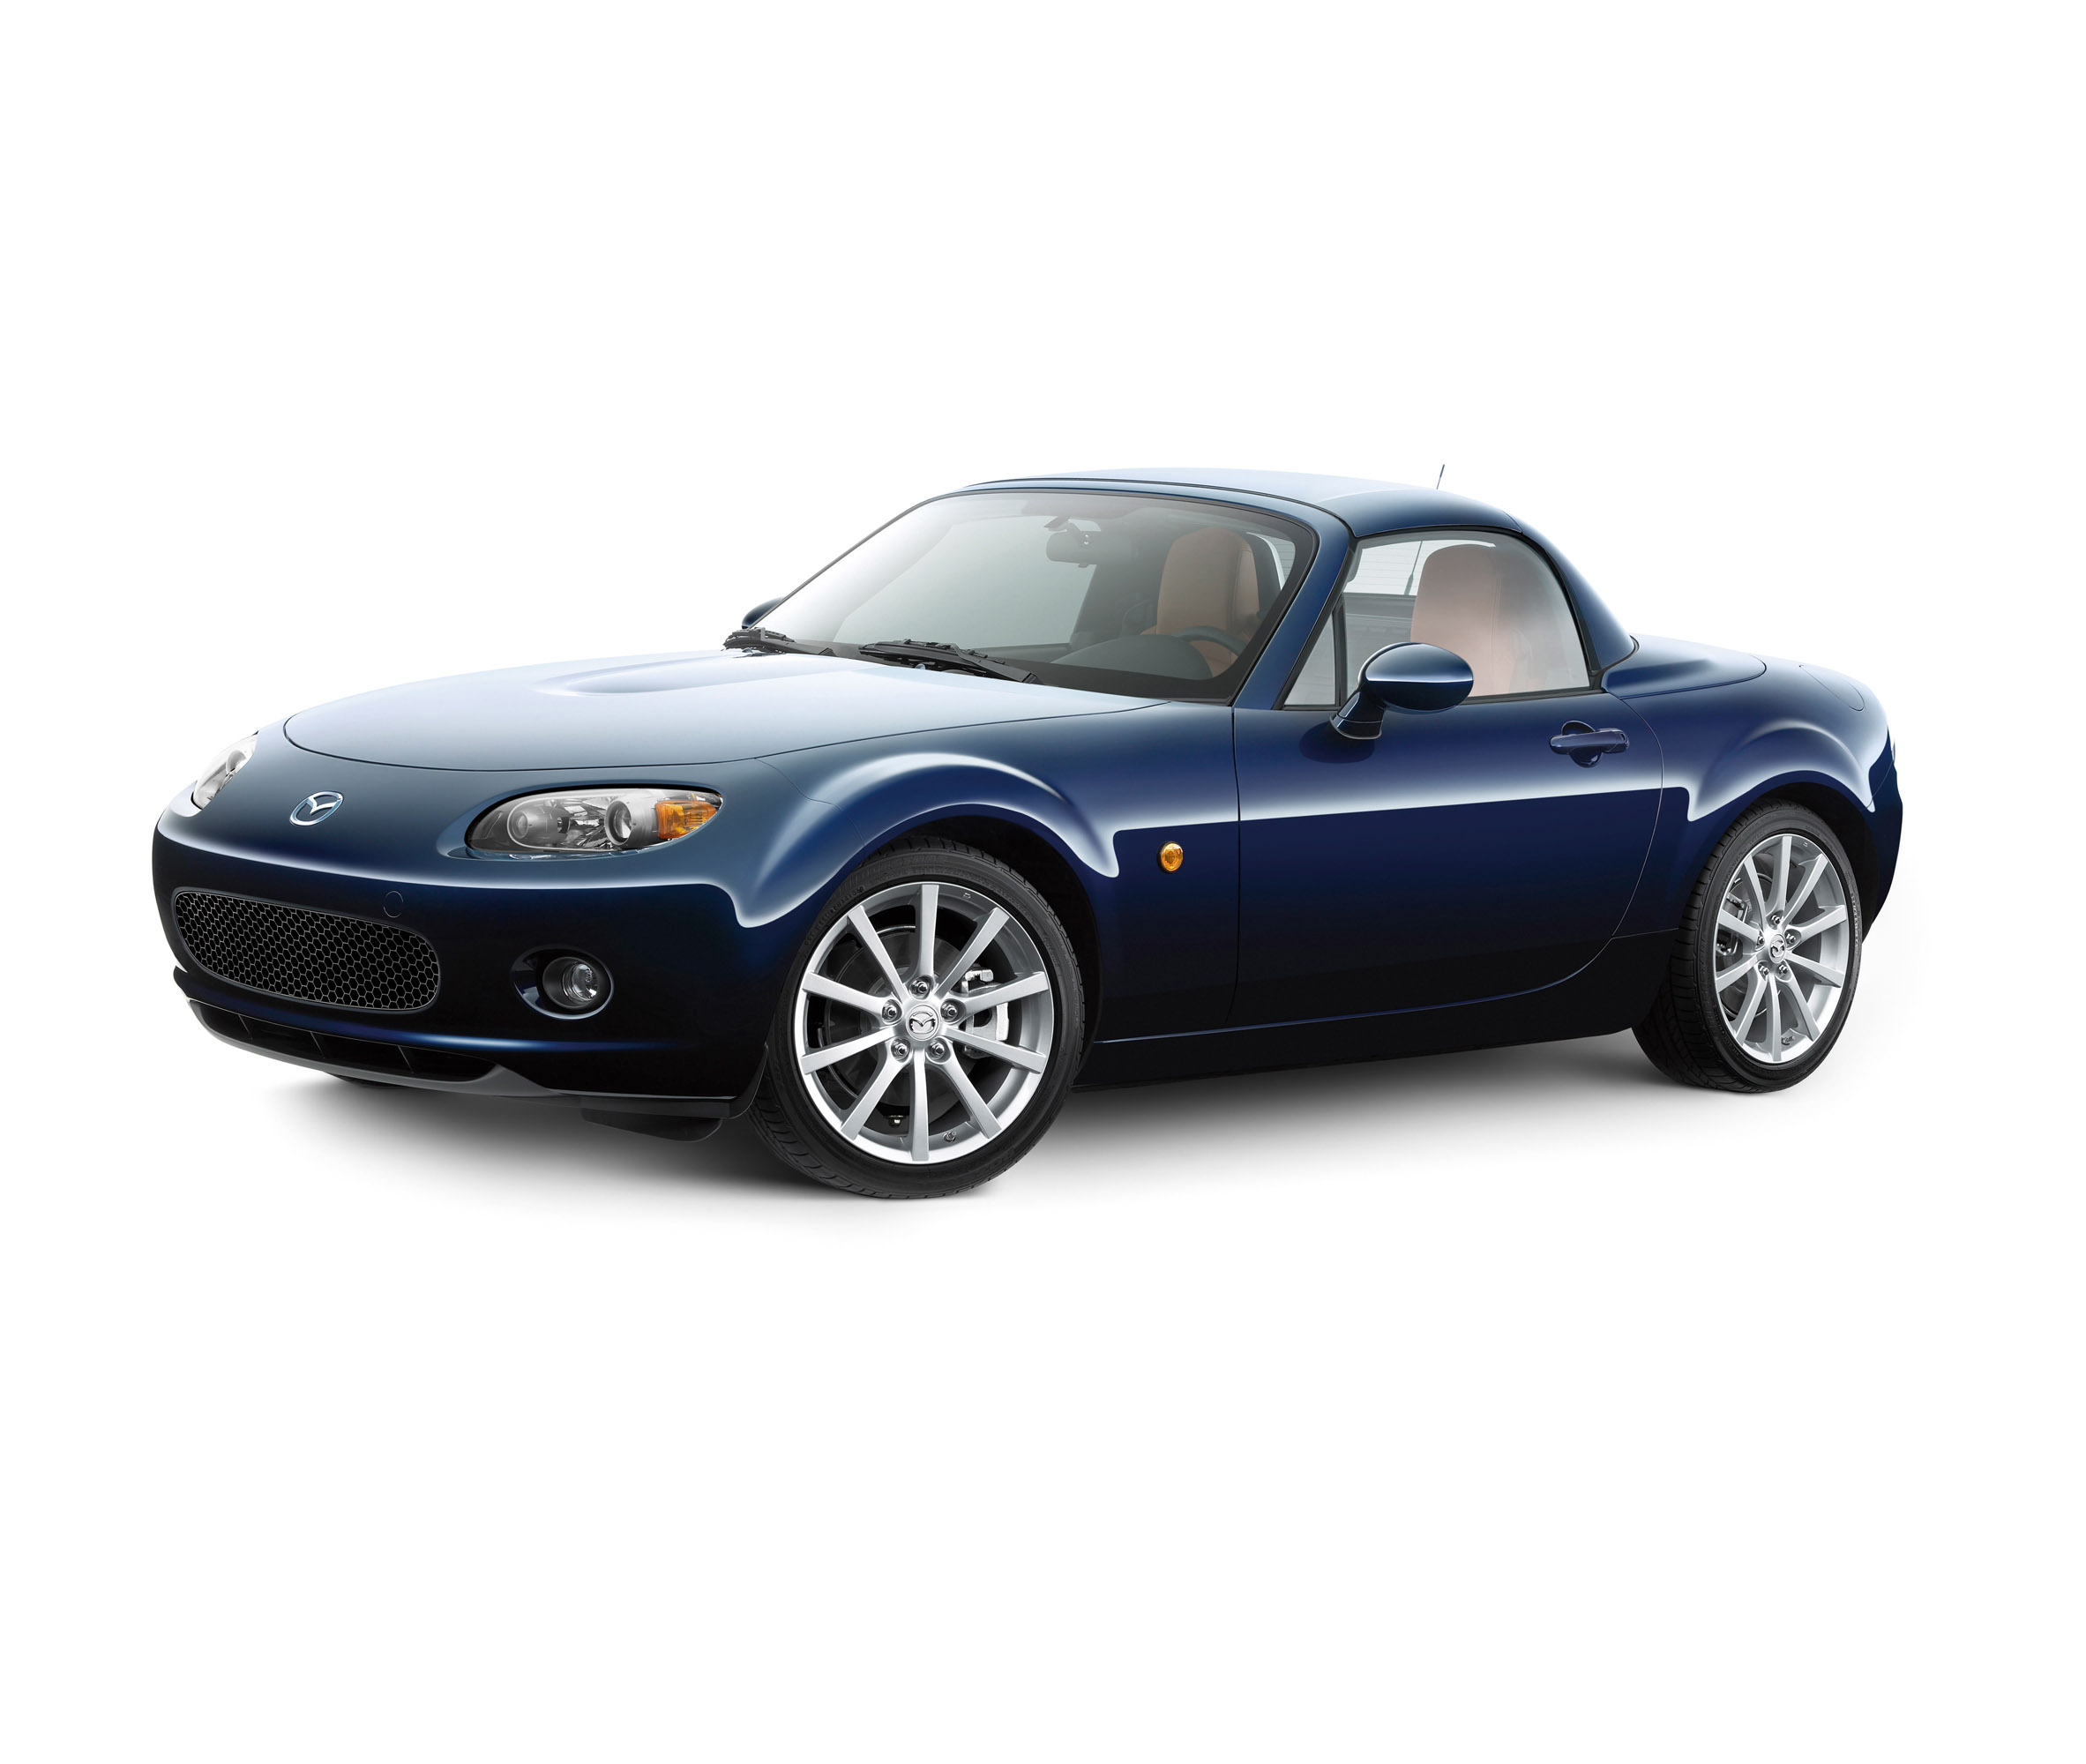 Mazda MX-5 Roadster Coupe photo #1